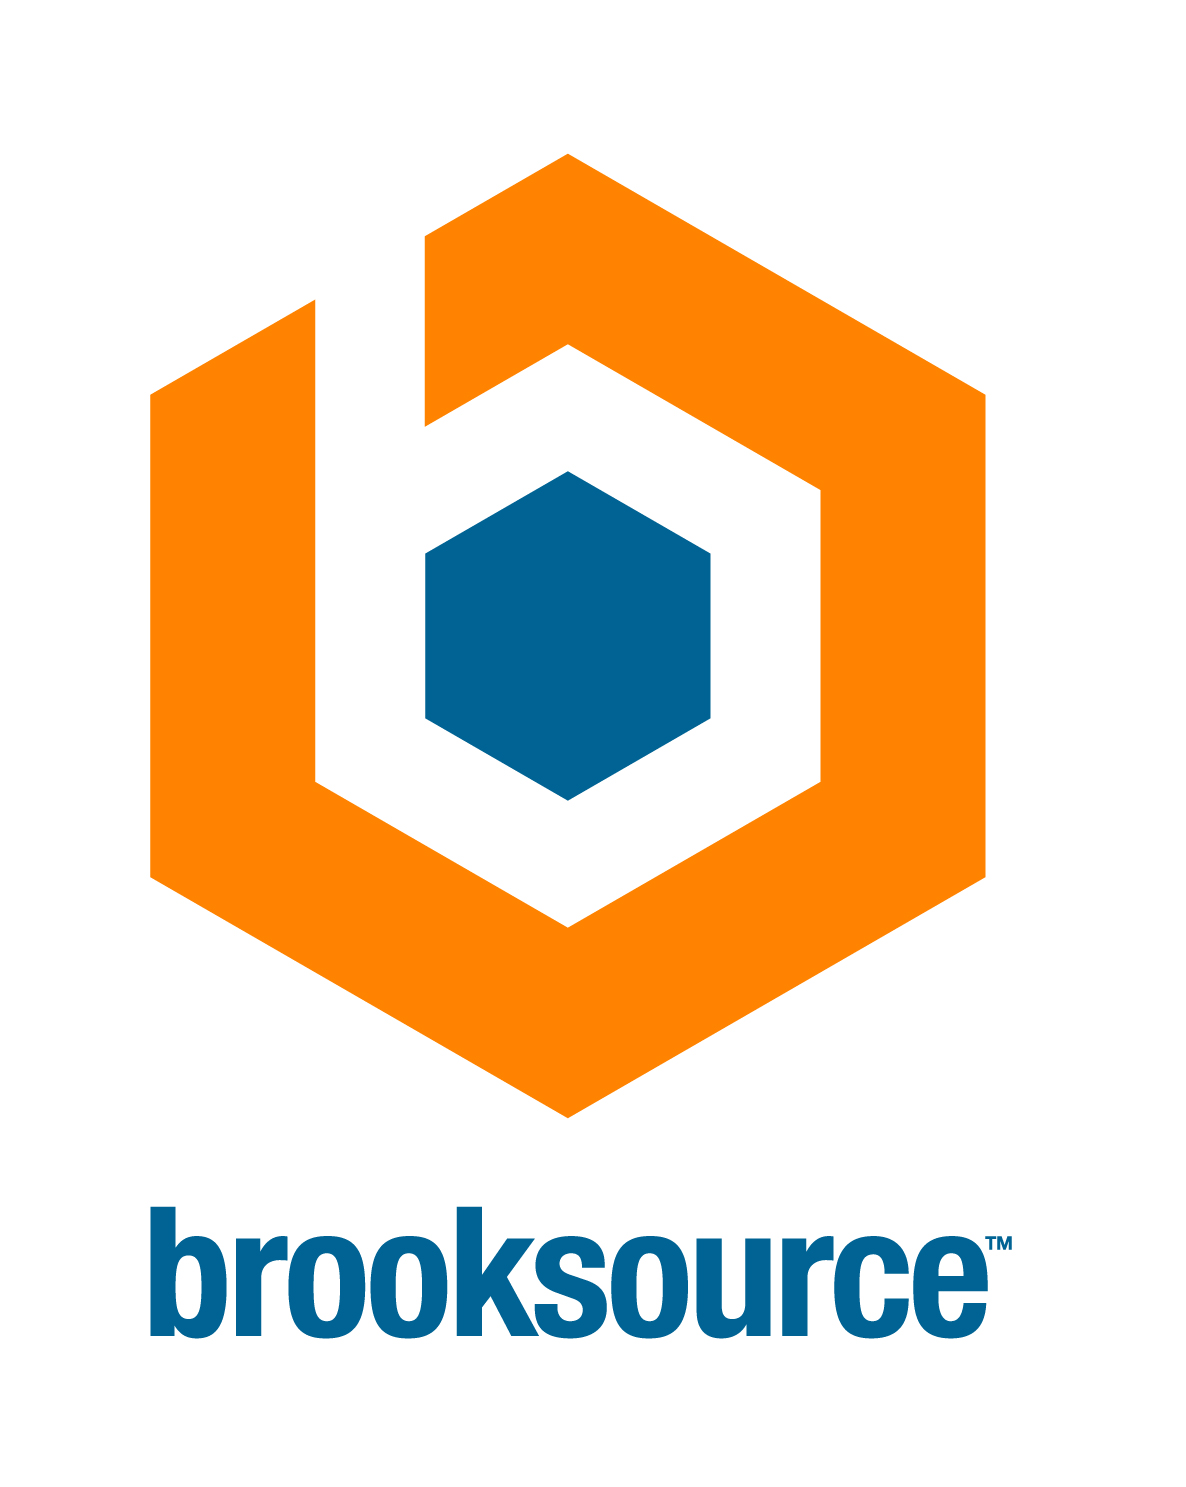 Brooksource - To find out how Brooksource can help you and your company, visit Brooksource.com.